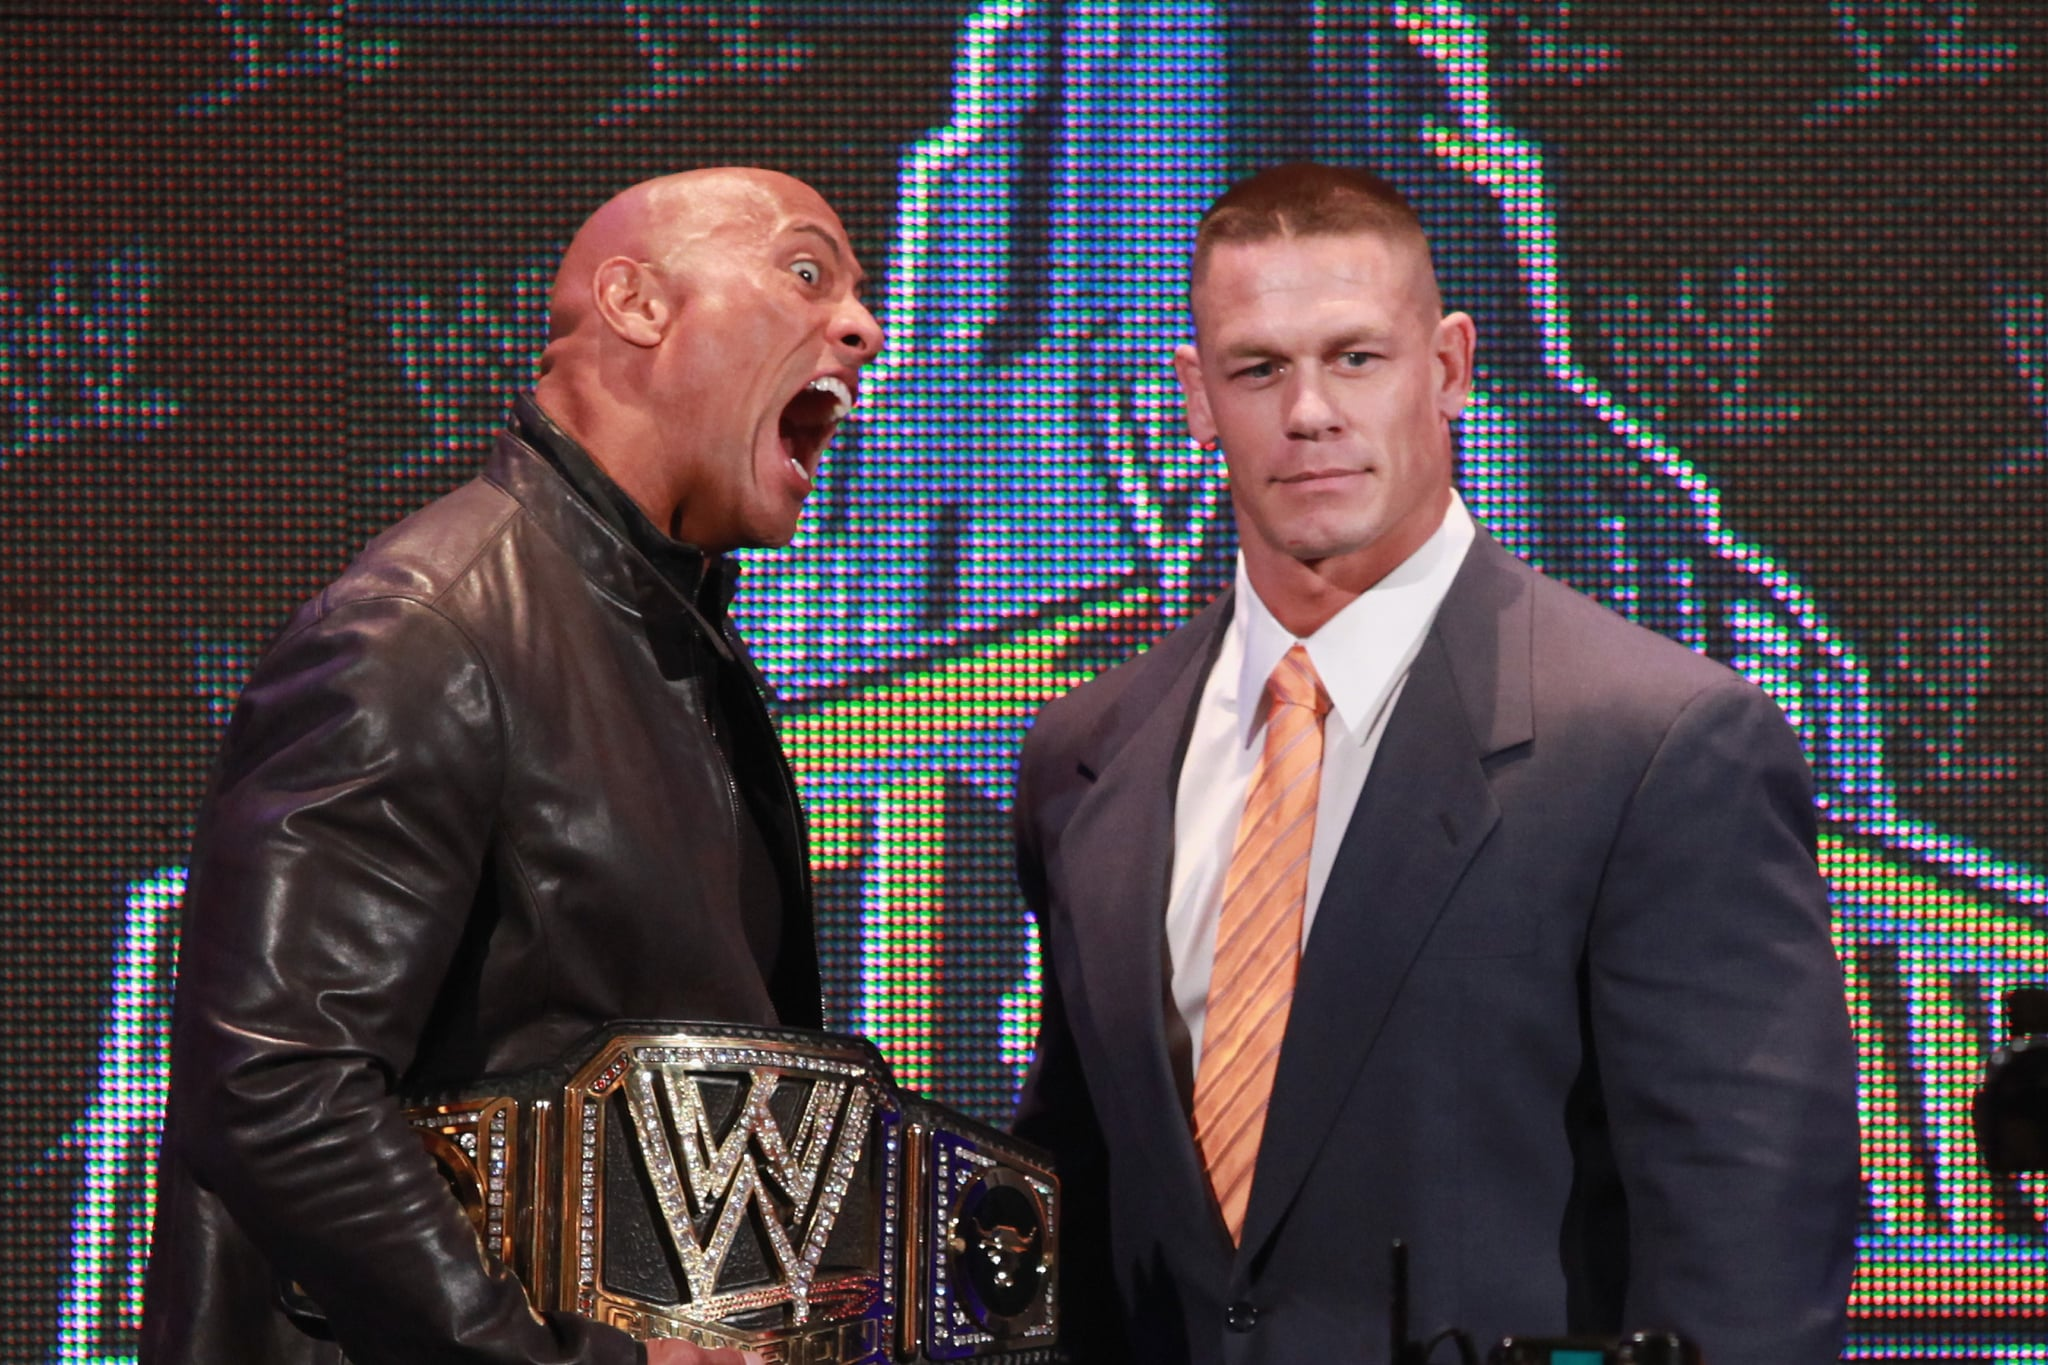 Are The Rock and John Cena Friends? | POPSUGAR Celebrity